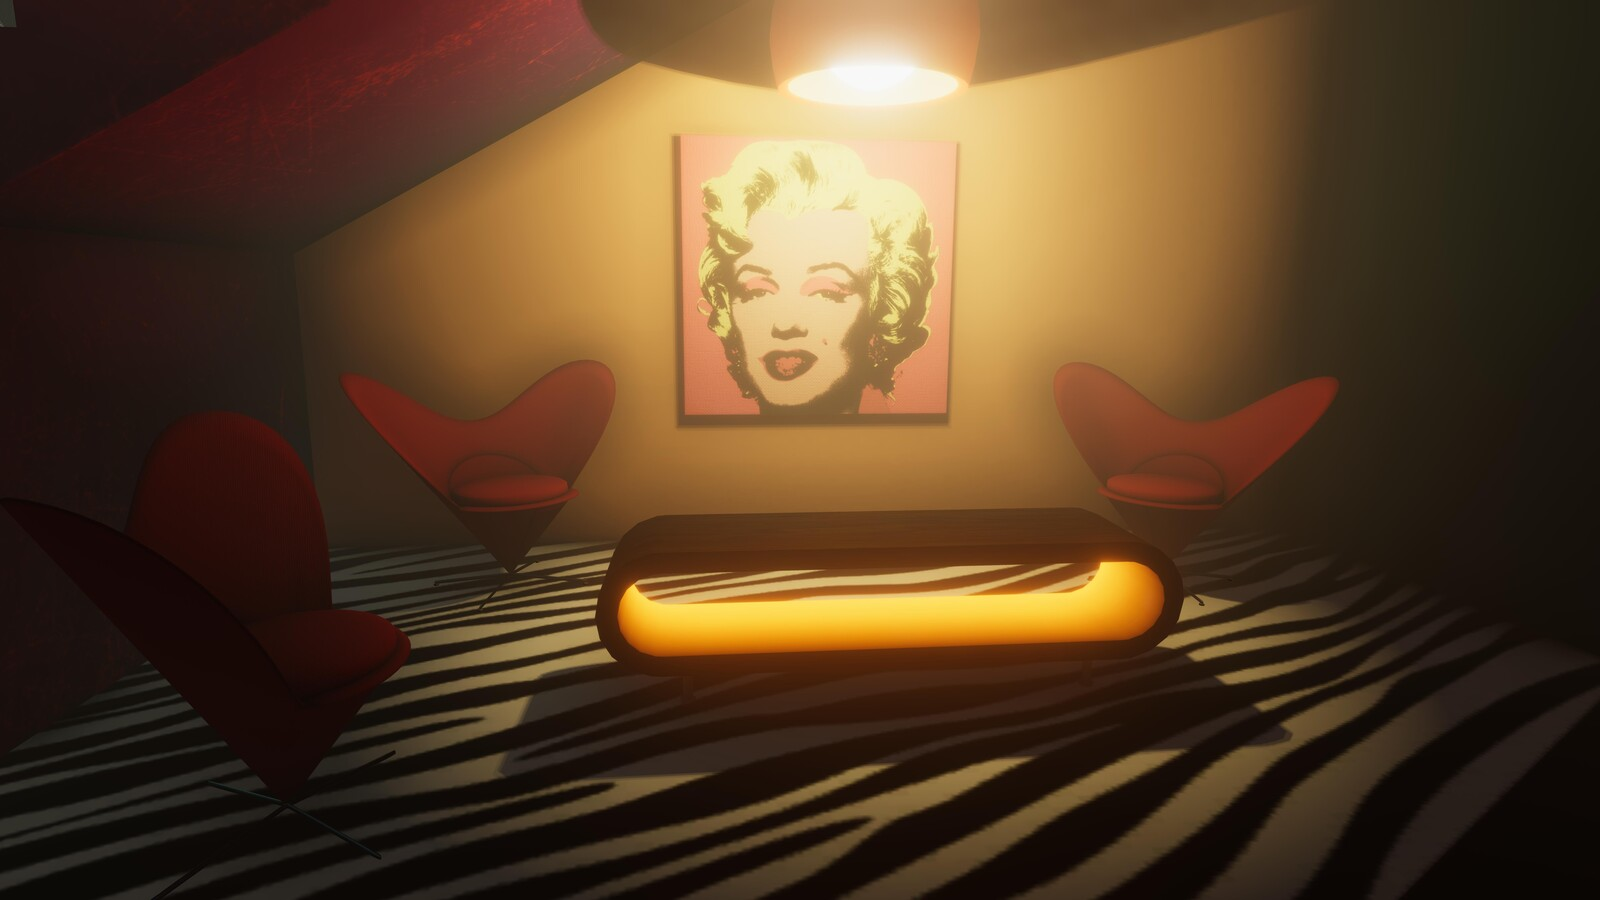 The lobby seating area all comes together well with the low hanging light and Marilyn on the wall.